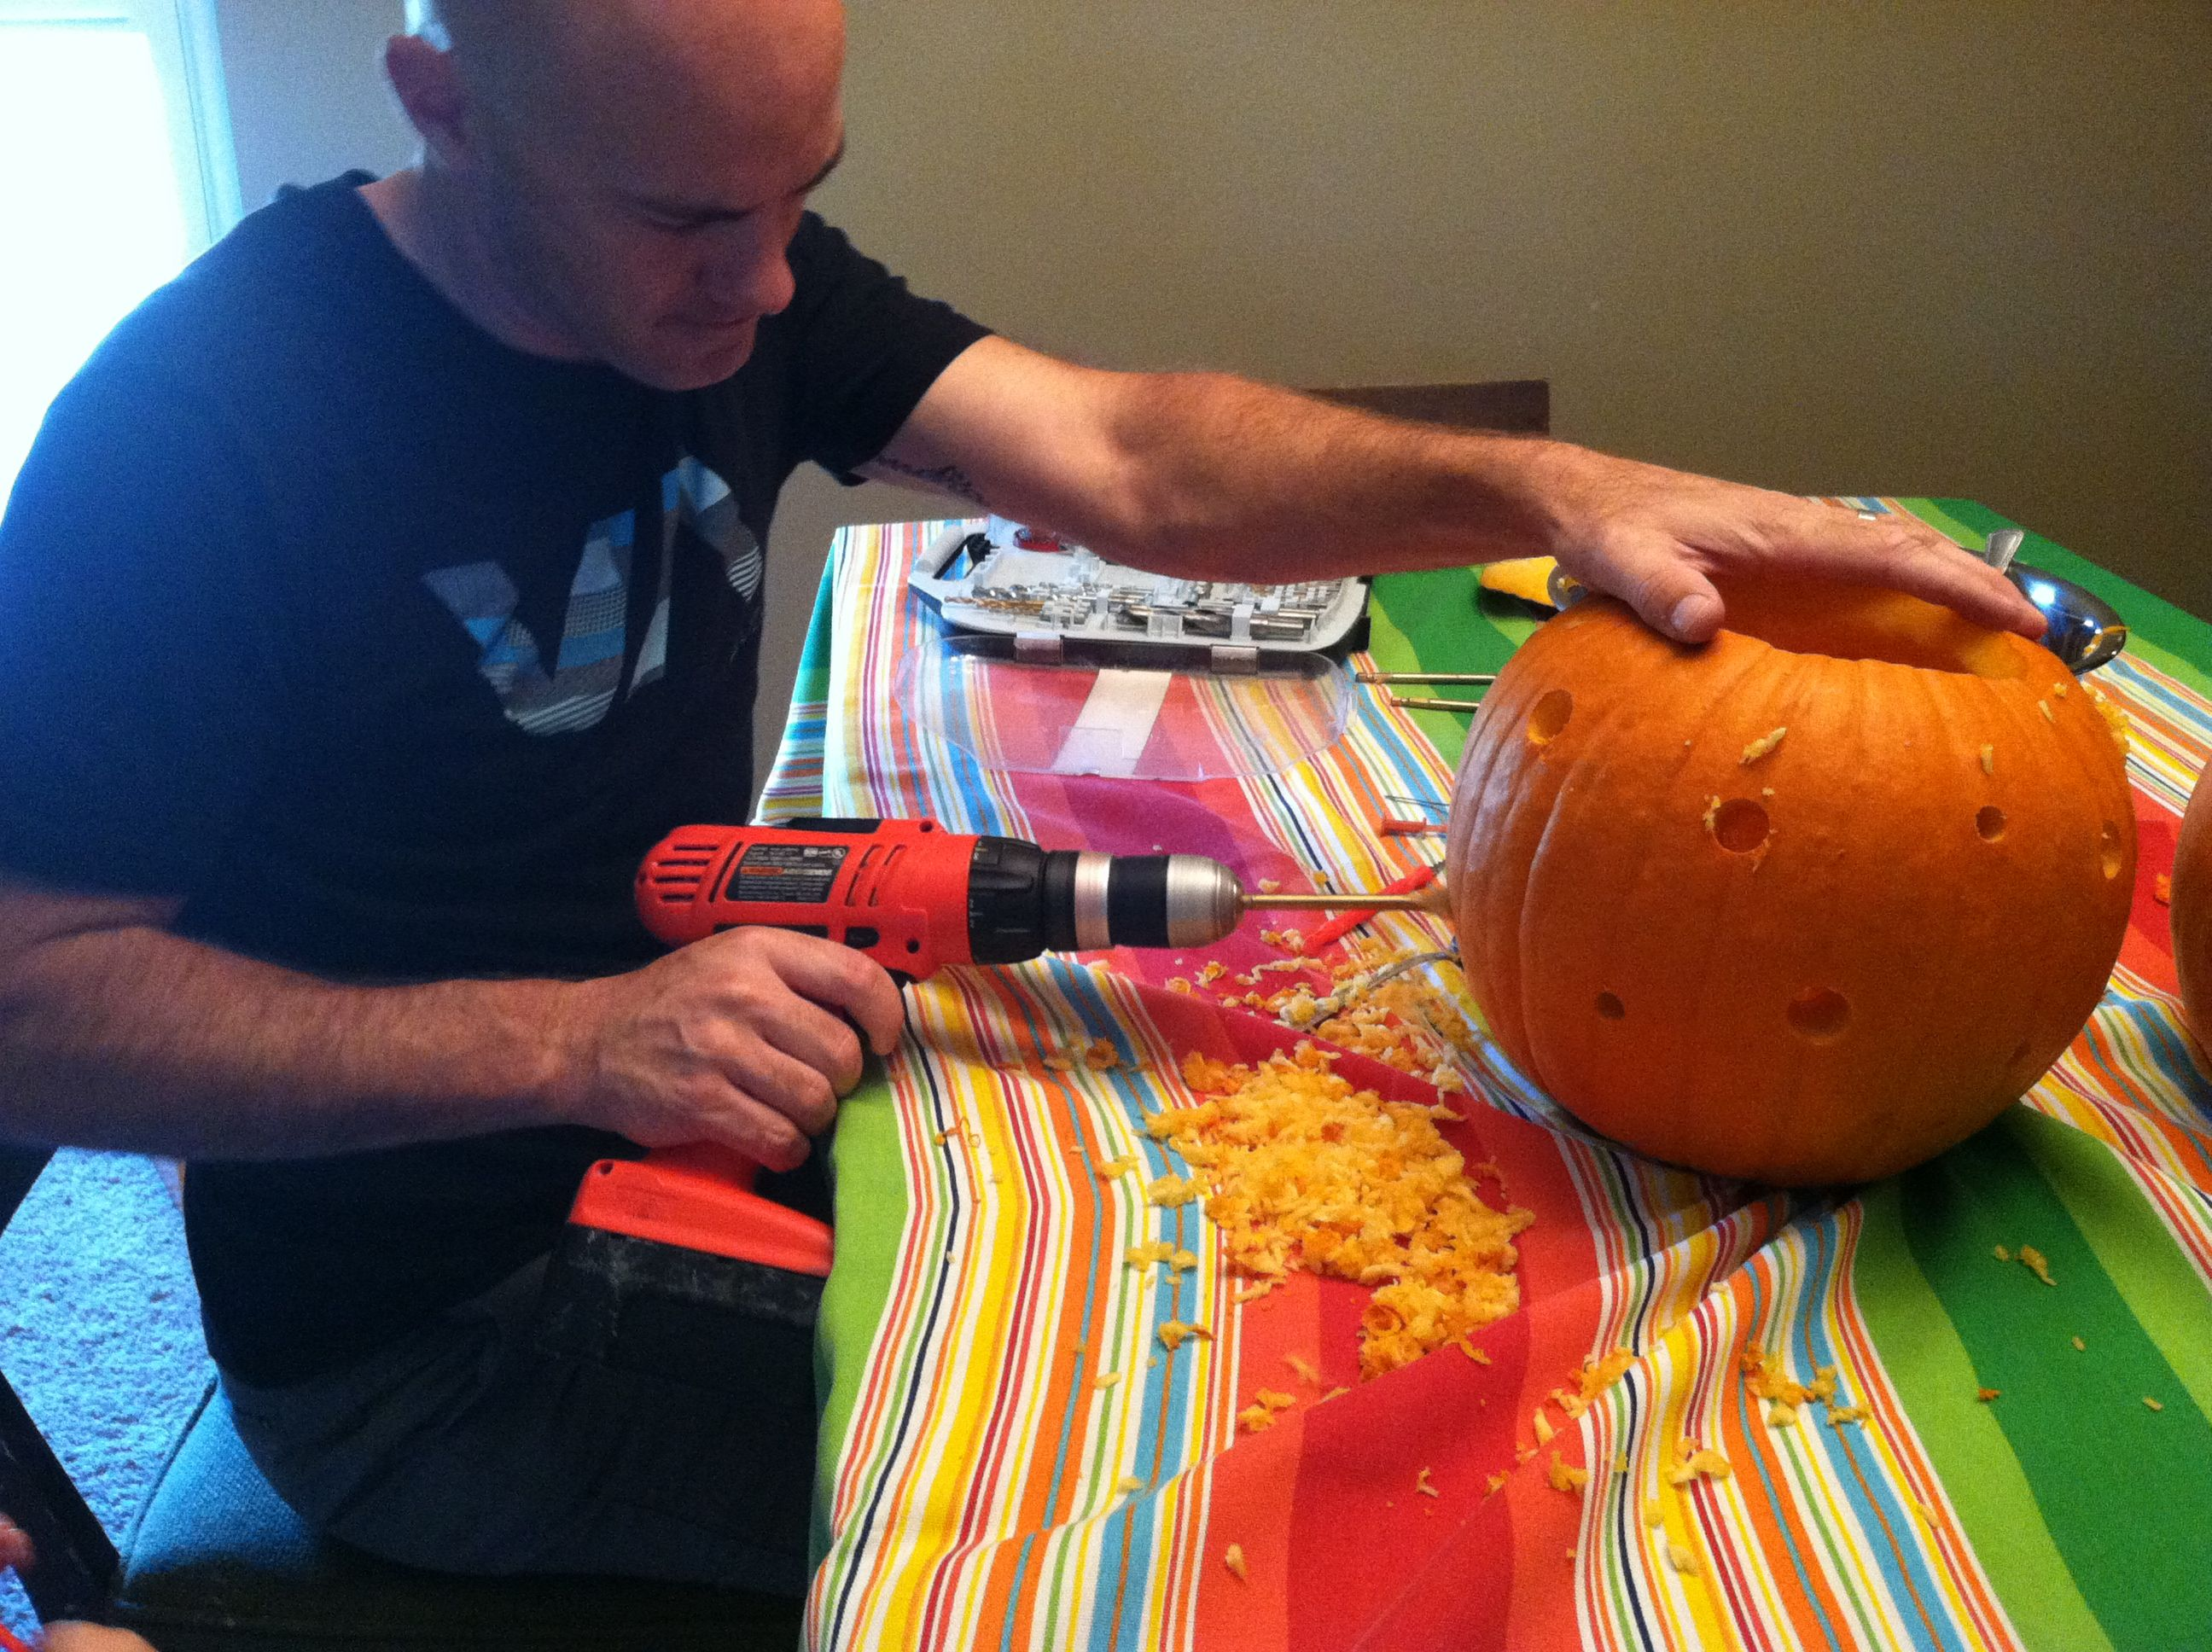 Forget The Knife Use Power Tools To Carve Your Halloween Pumpkin Pumpkin Carving Pumpkin Halloween Pumpkins